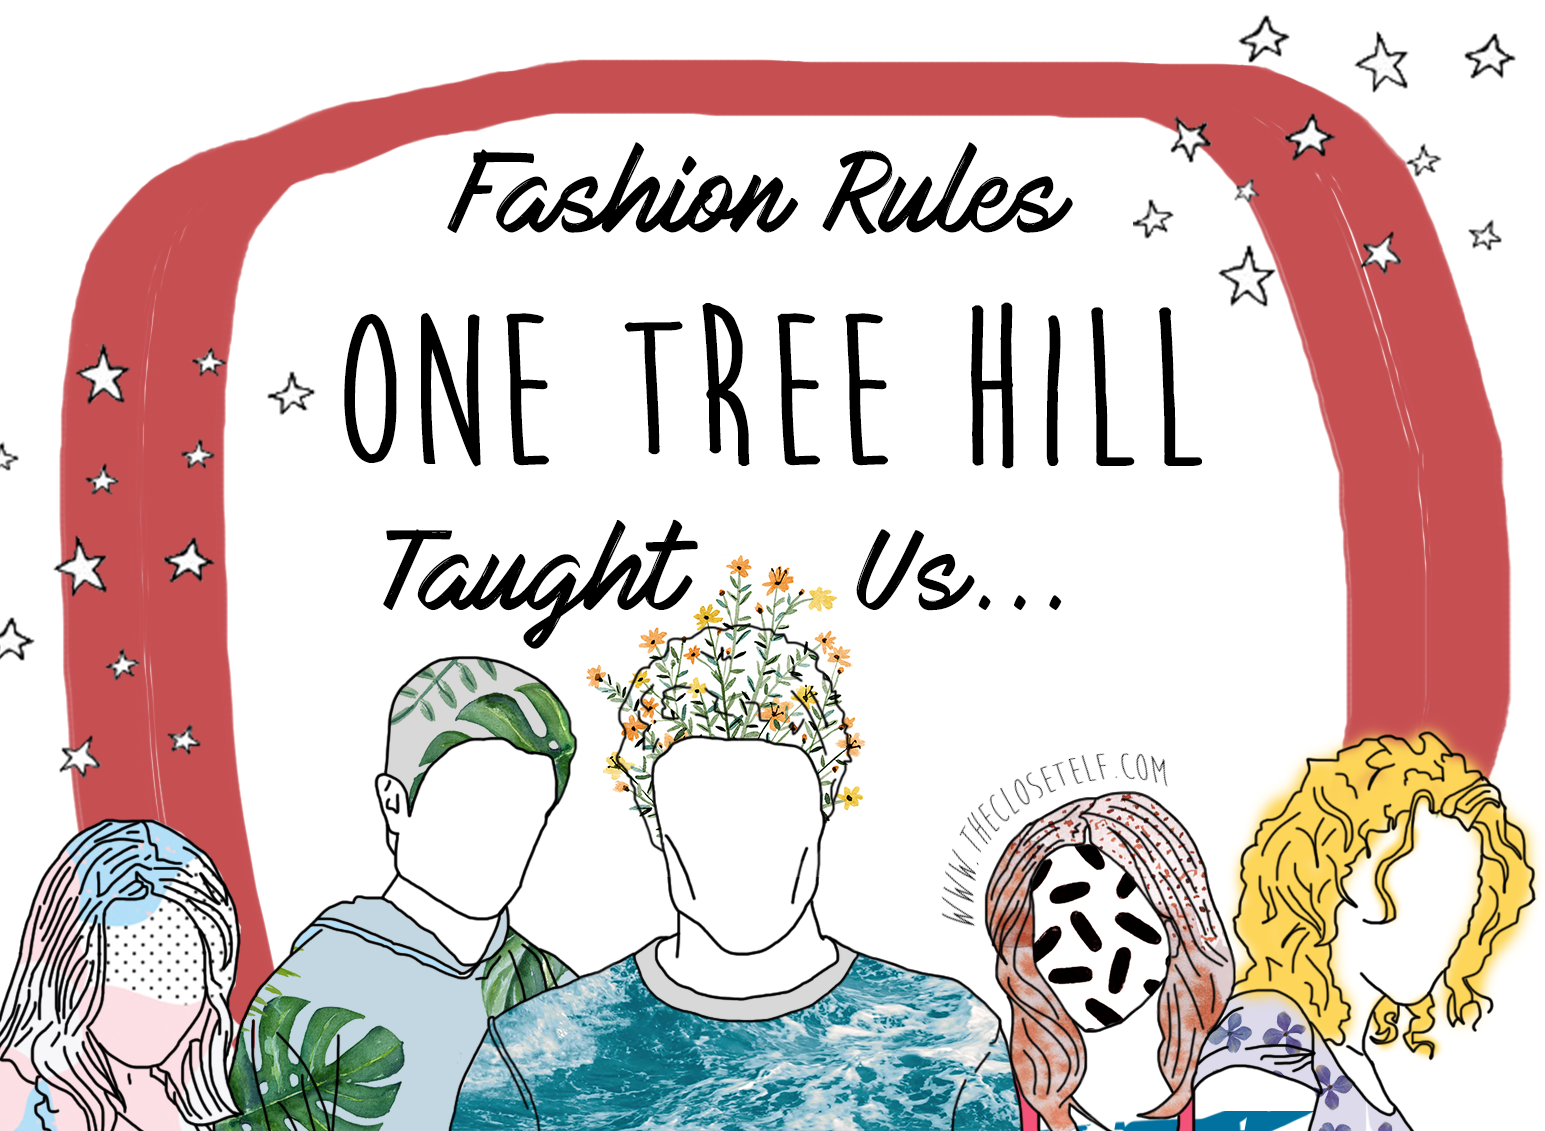 Fashion Rules One Tree Hill Taught Us